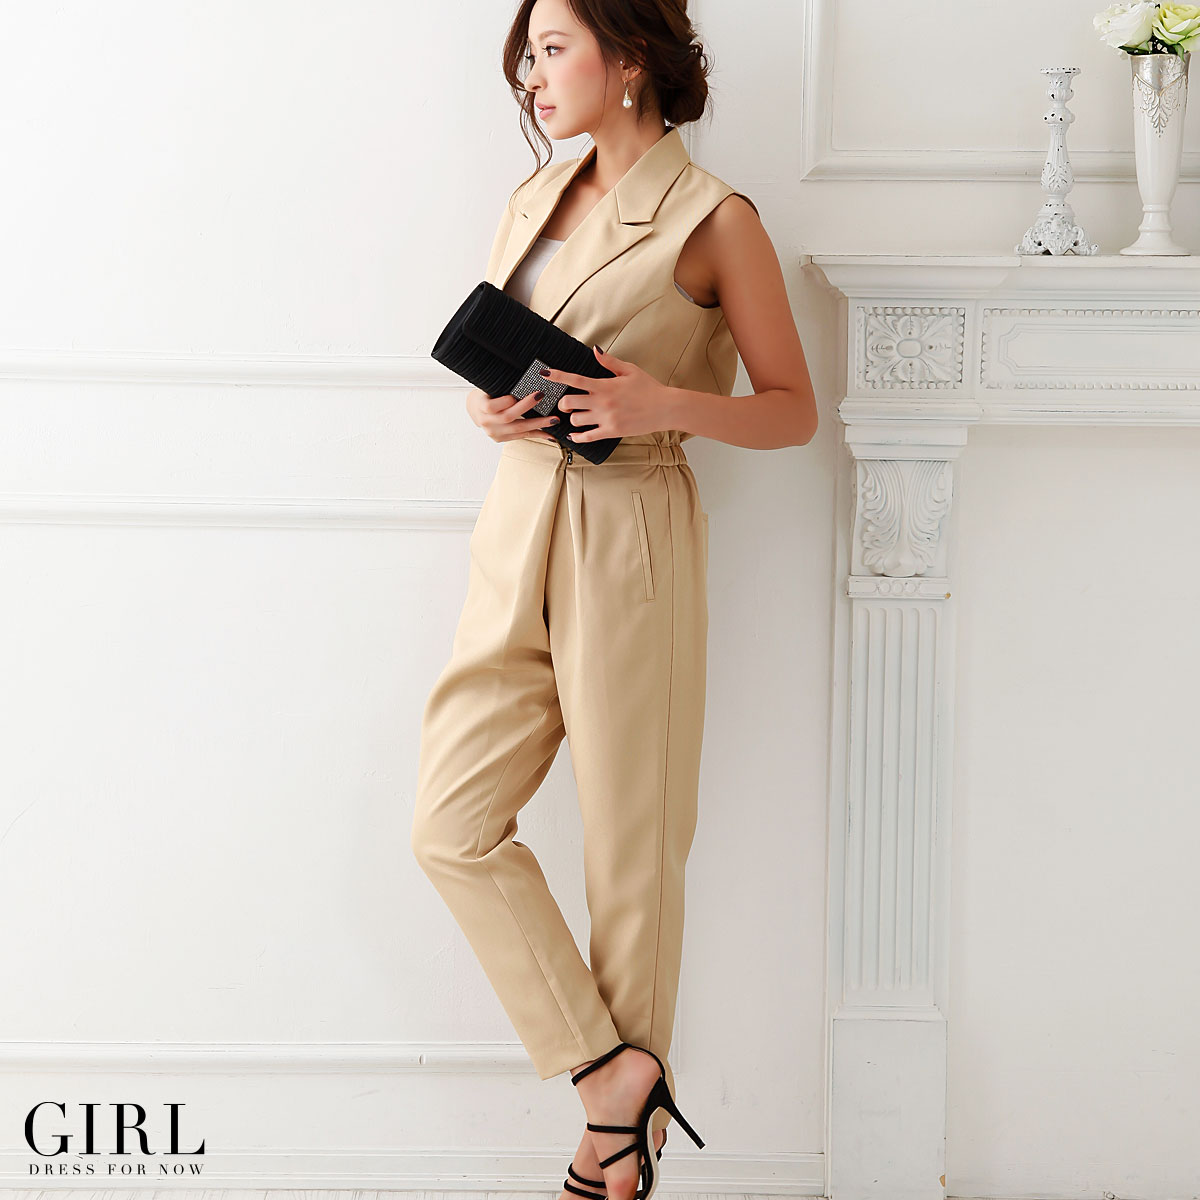 Girl ok rakuten global market prom dress pants dress dress prom dress pants dress dress invited large size party dress pants style shorts all in ombrellifo Images